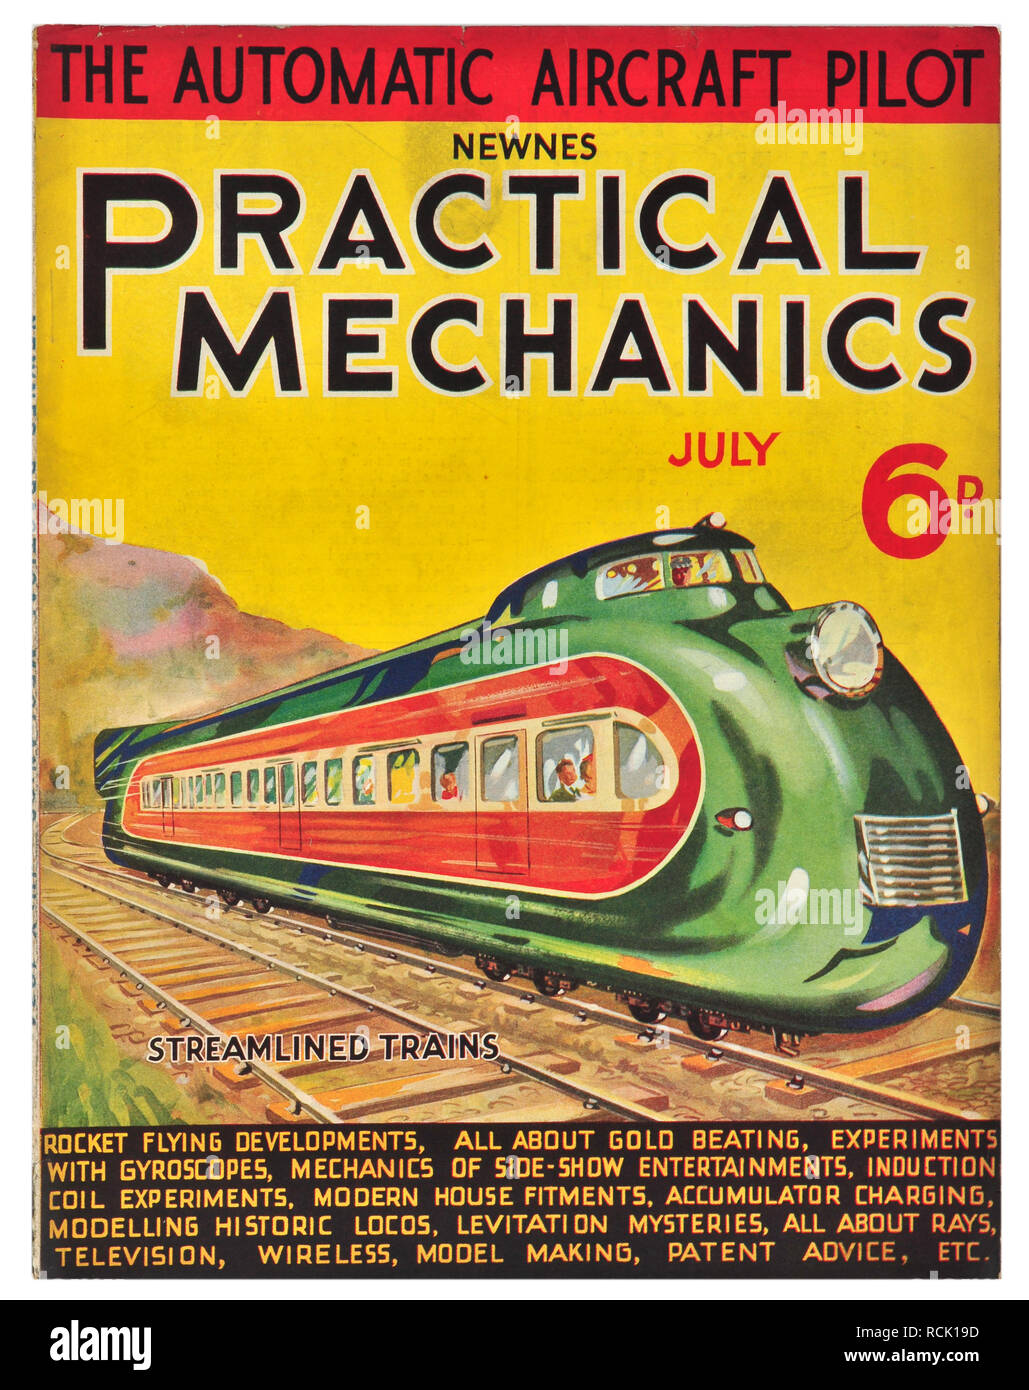 Newnes practical mechanics July 1934 Streamlined trains costing 6D - Stock Image